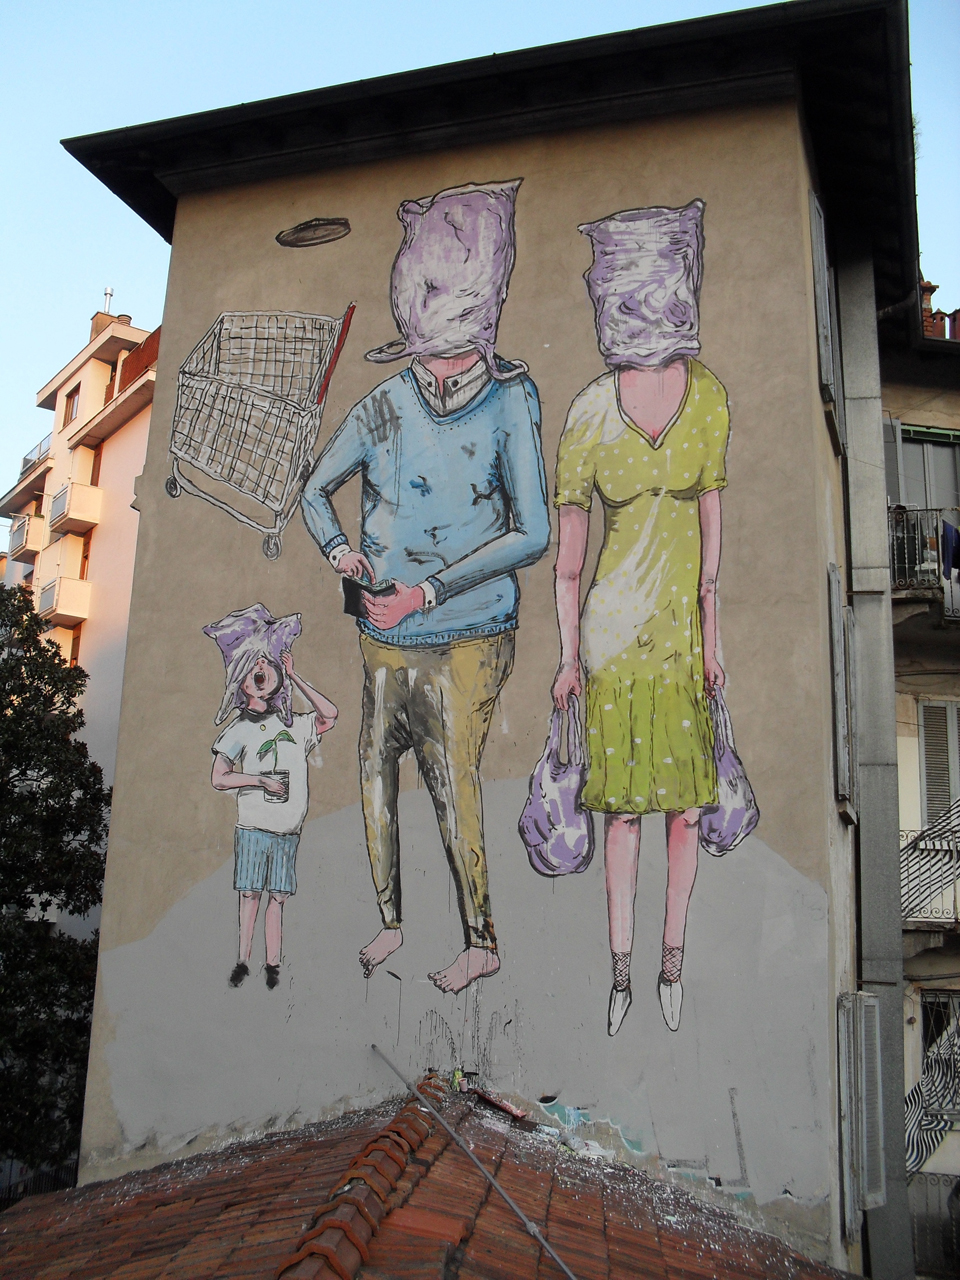 EmaJons - A Series of New Murals